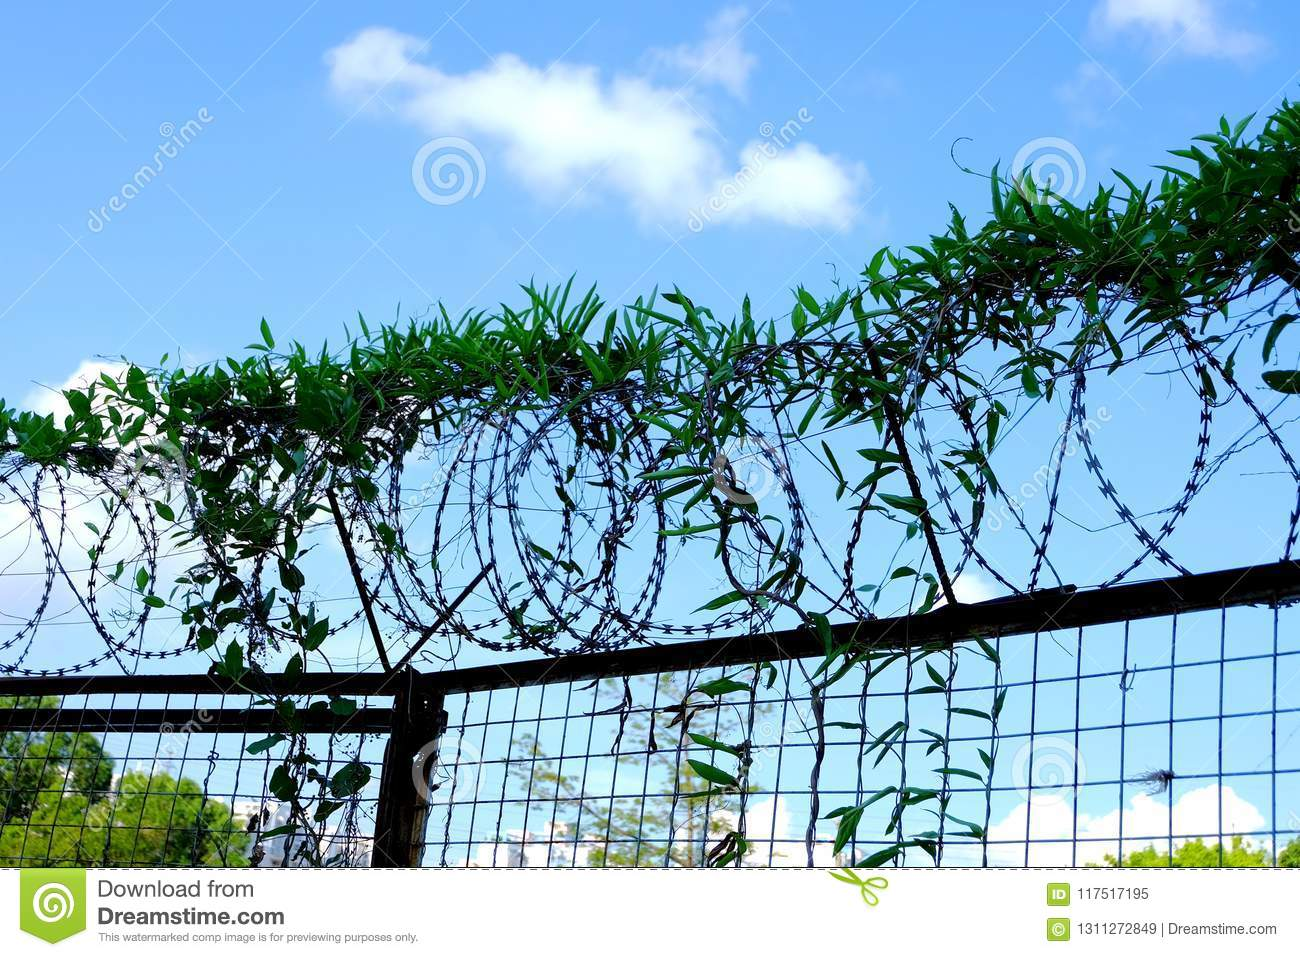 Barbed wire fence stock image. Image of terror, protective - 117517195